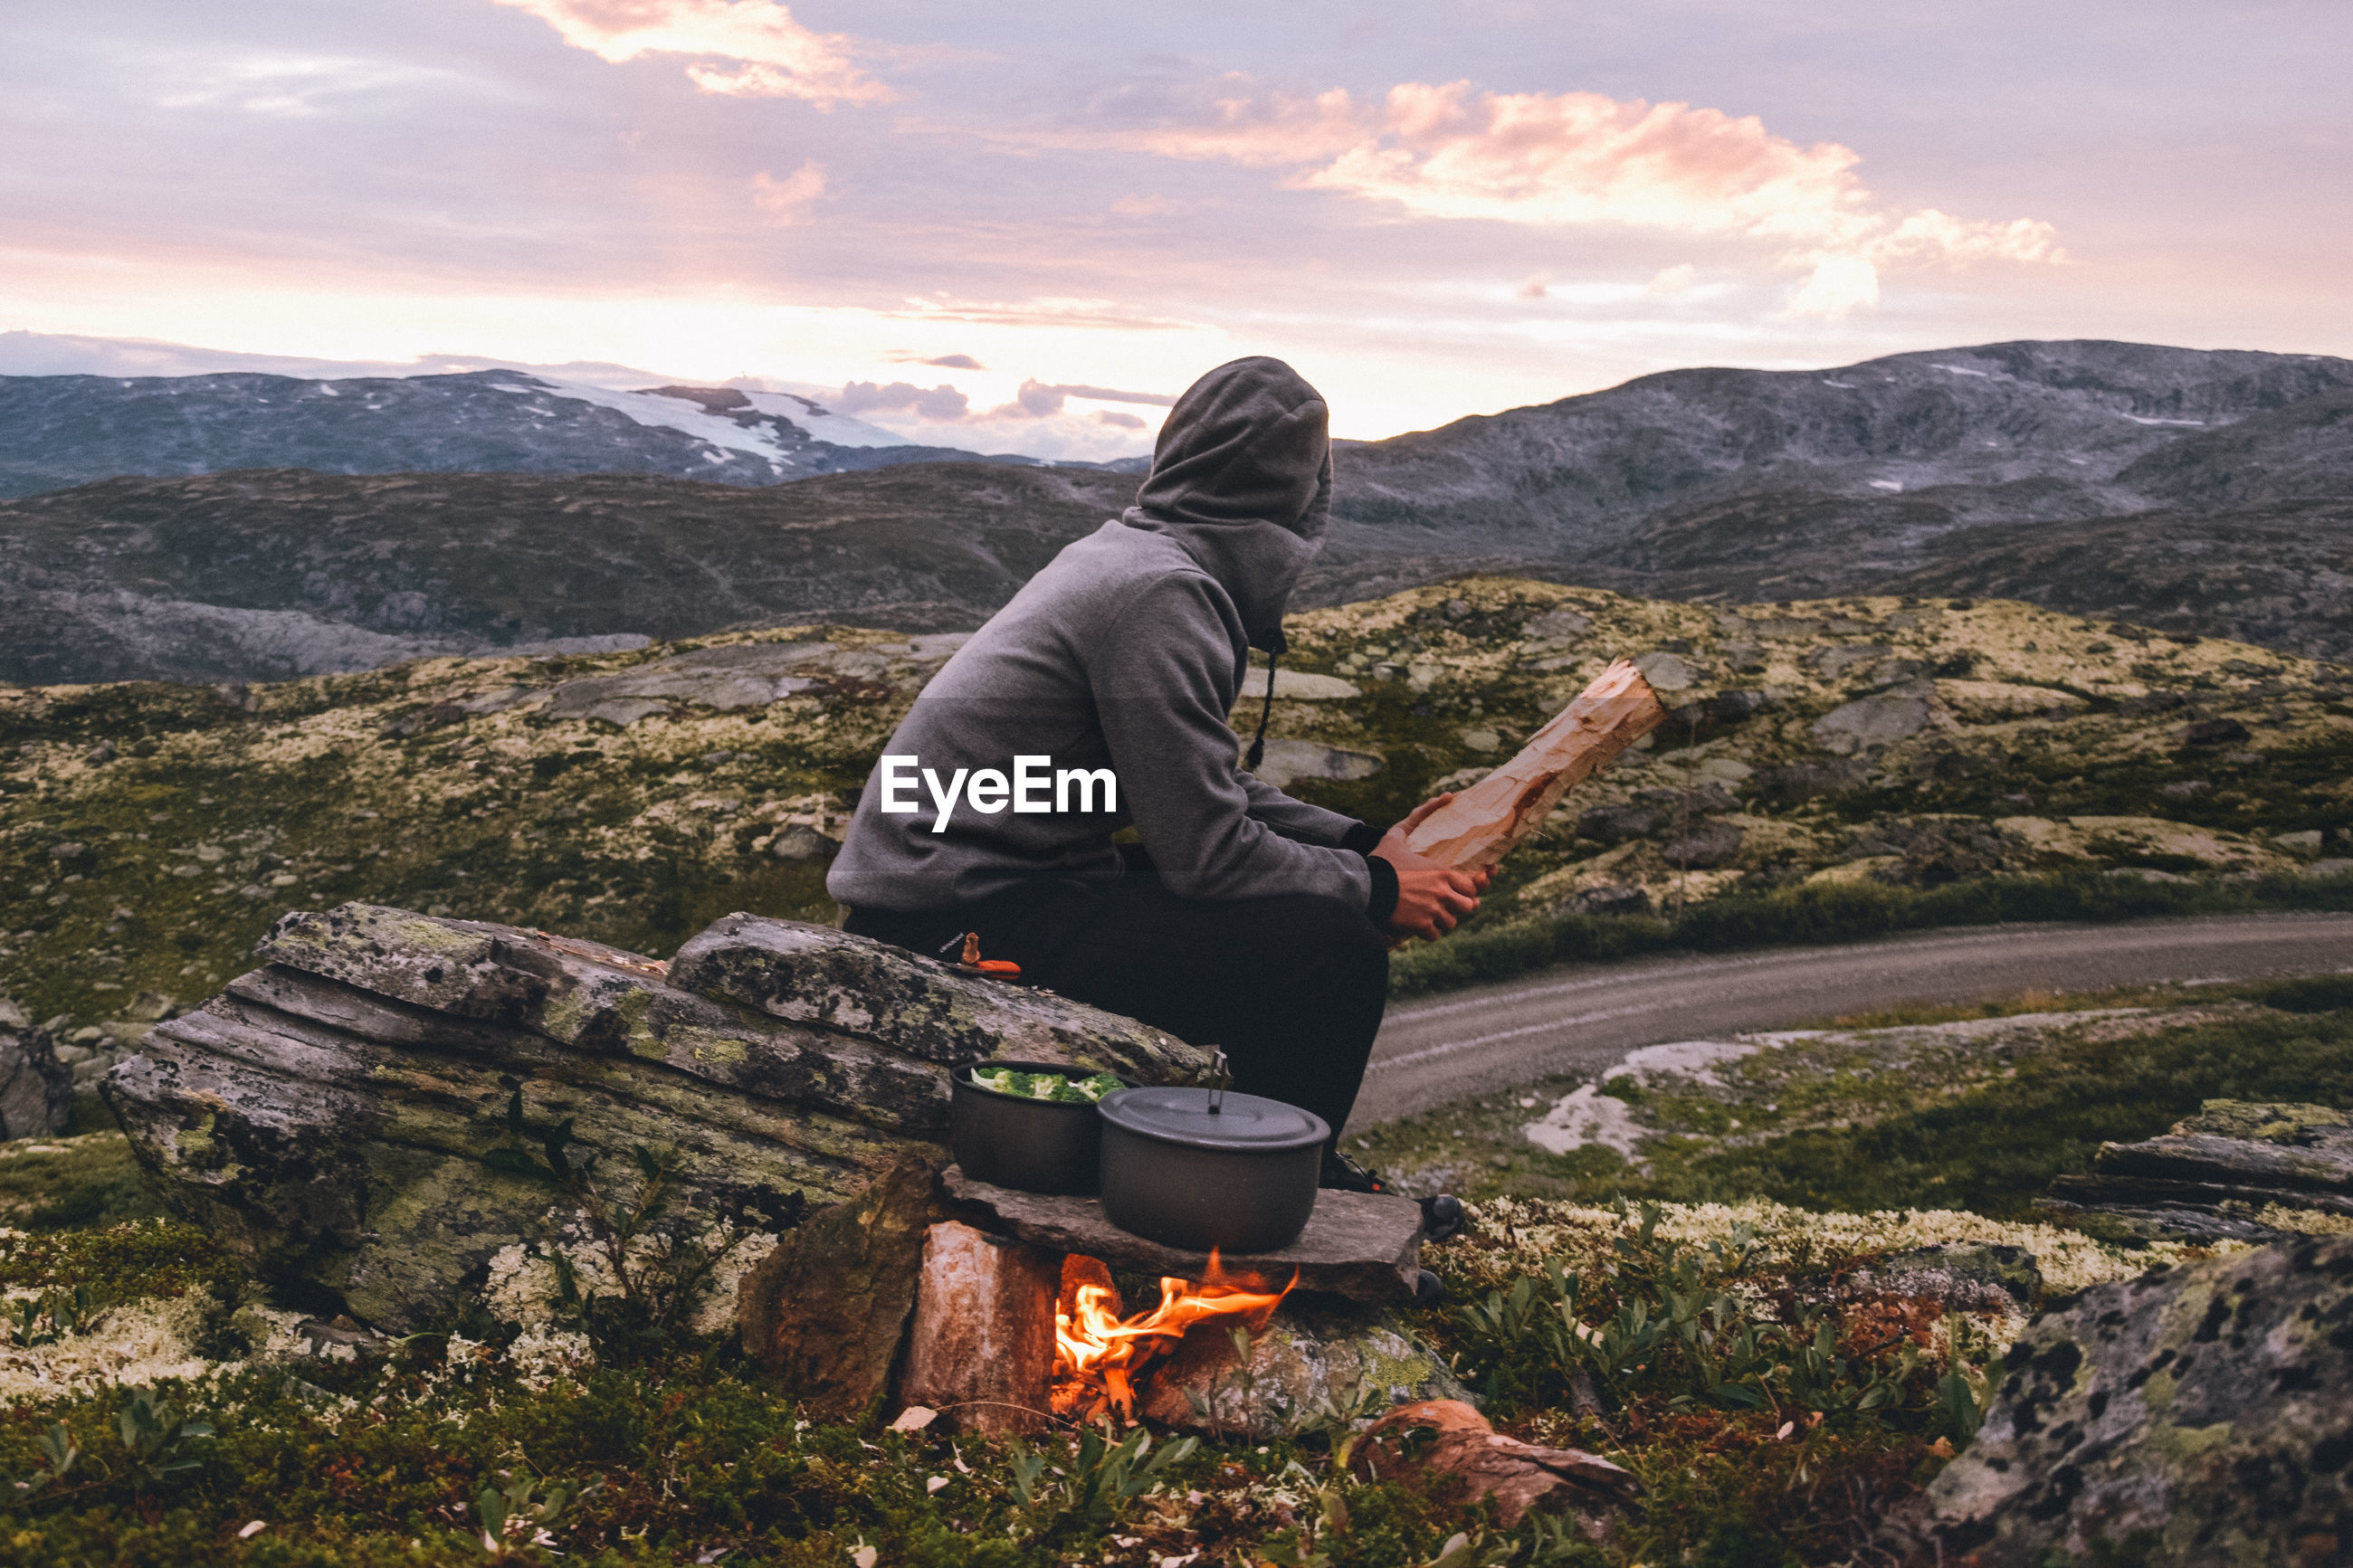 Full length of man sitting by fire against mountains and sky